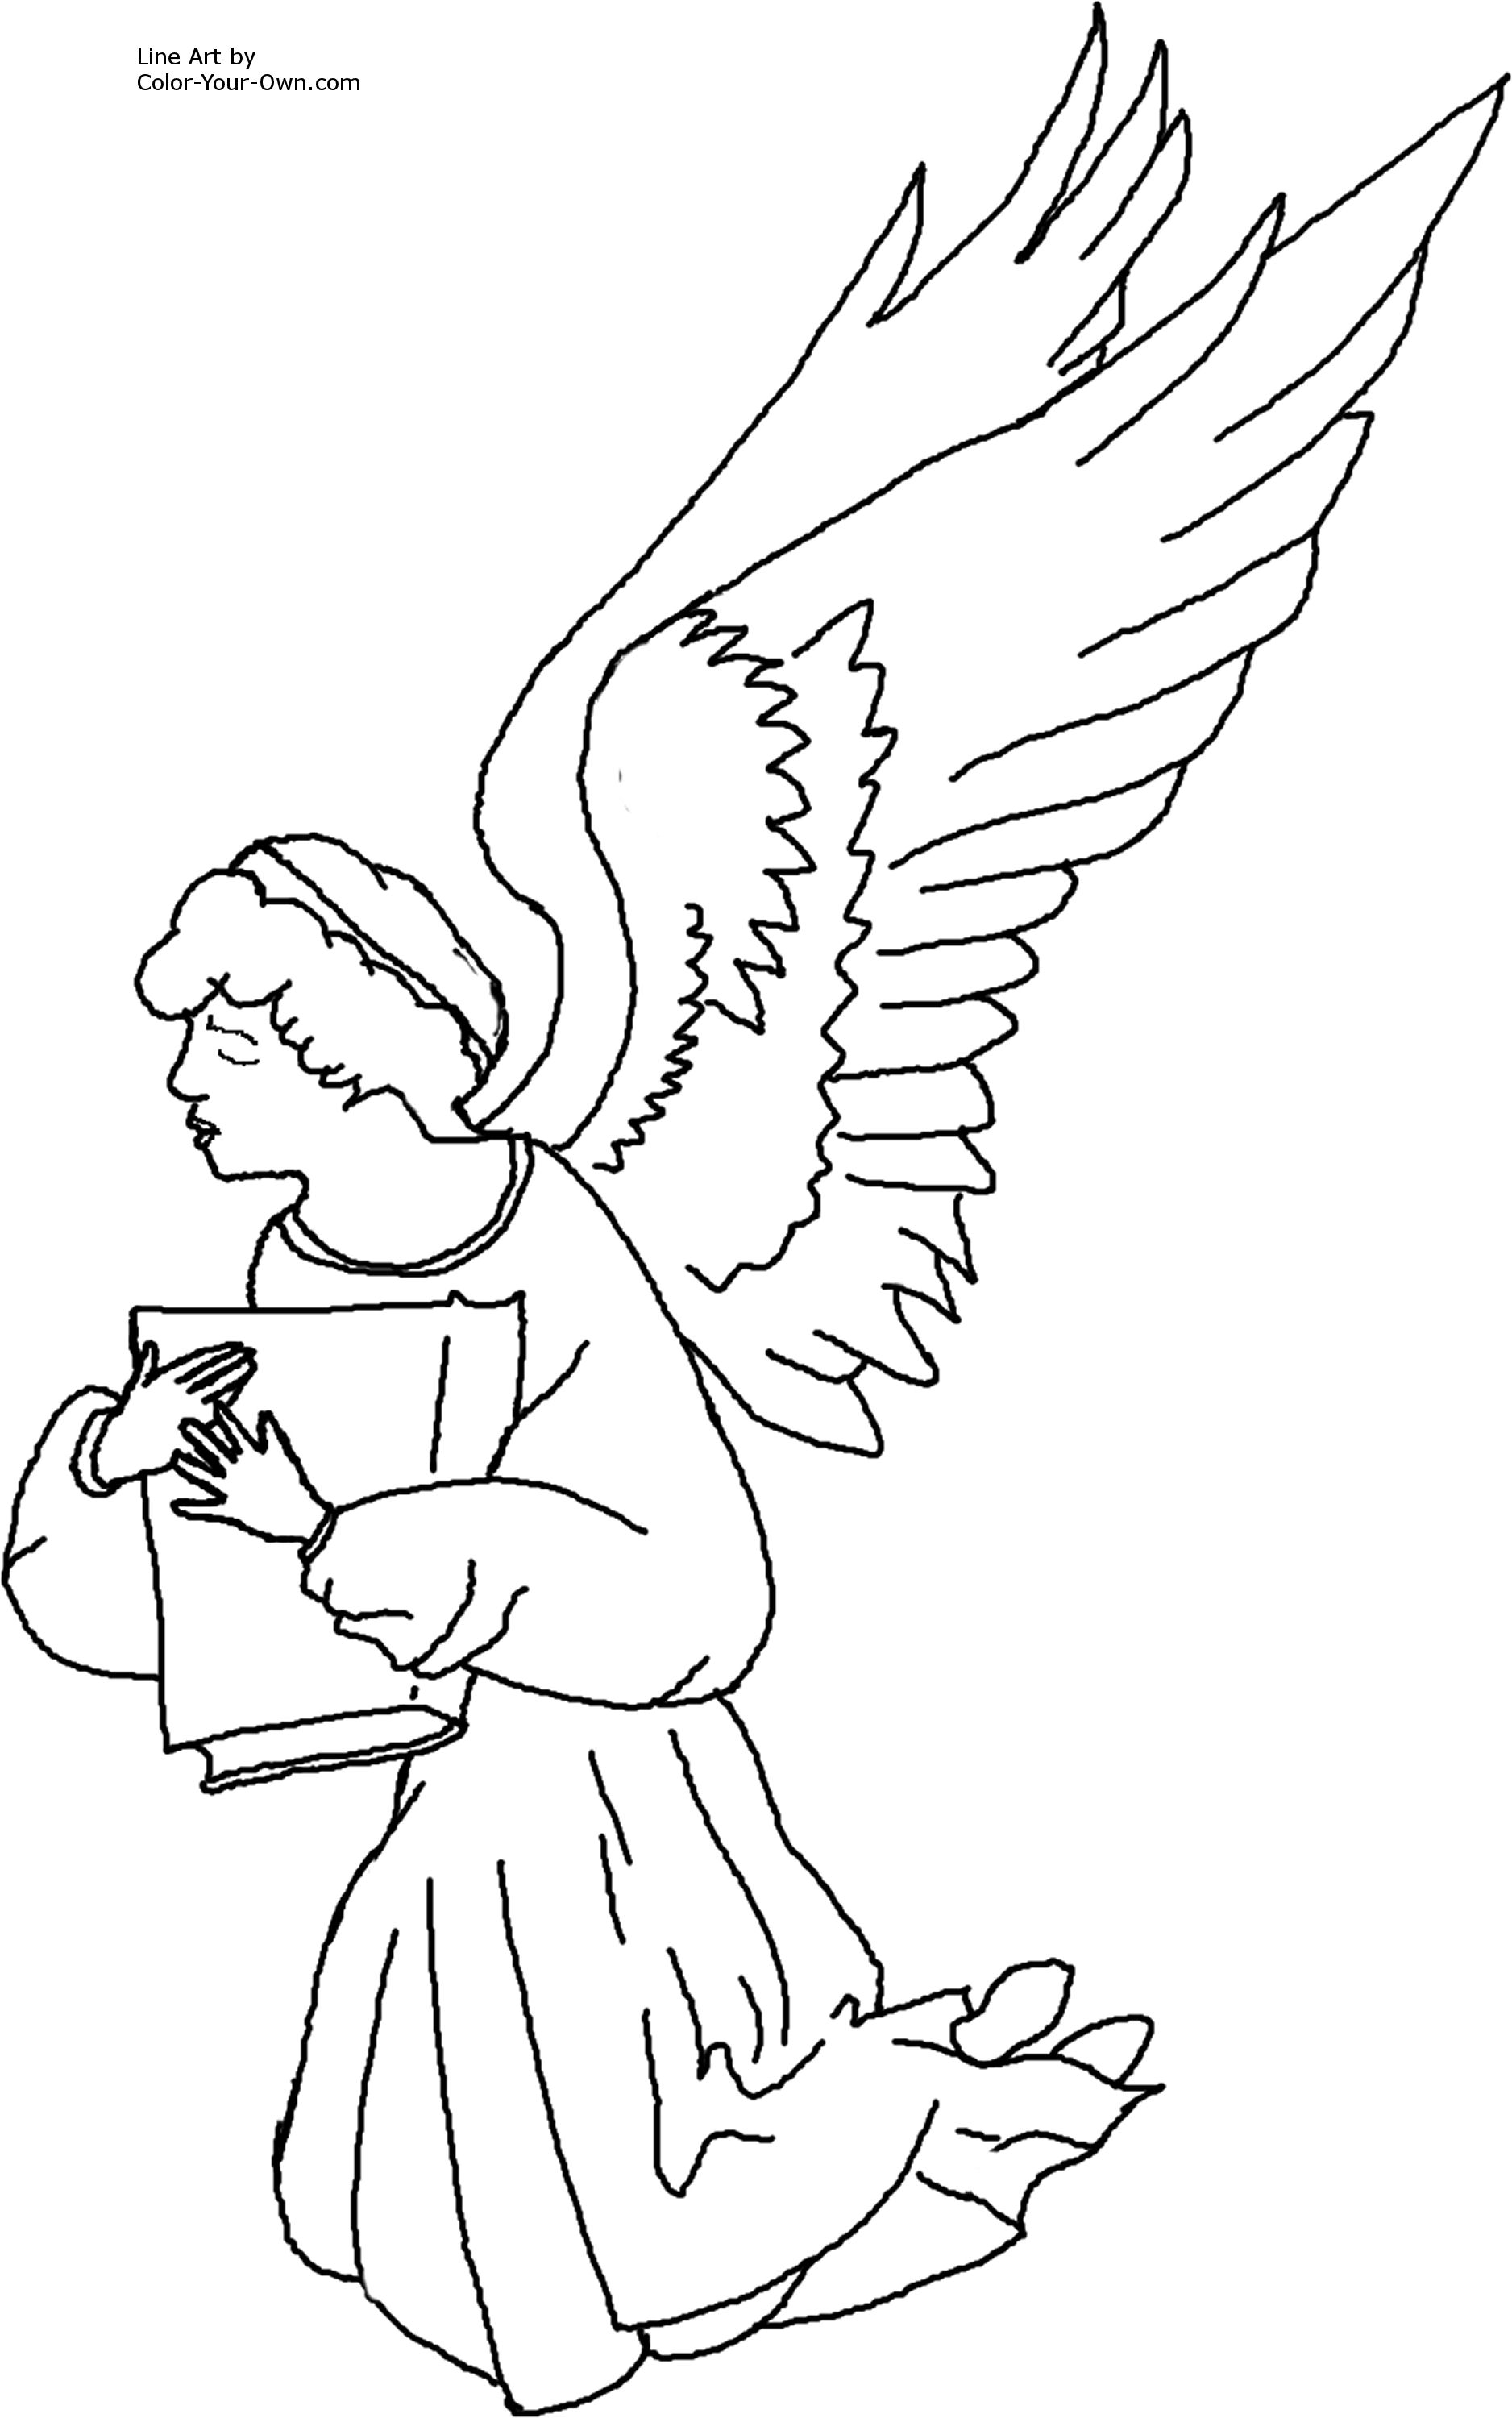 Uncategorized Coloring Pages Angel kneeling angel coloring page printable size click here return to the pages index